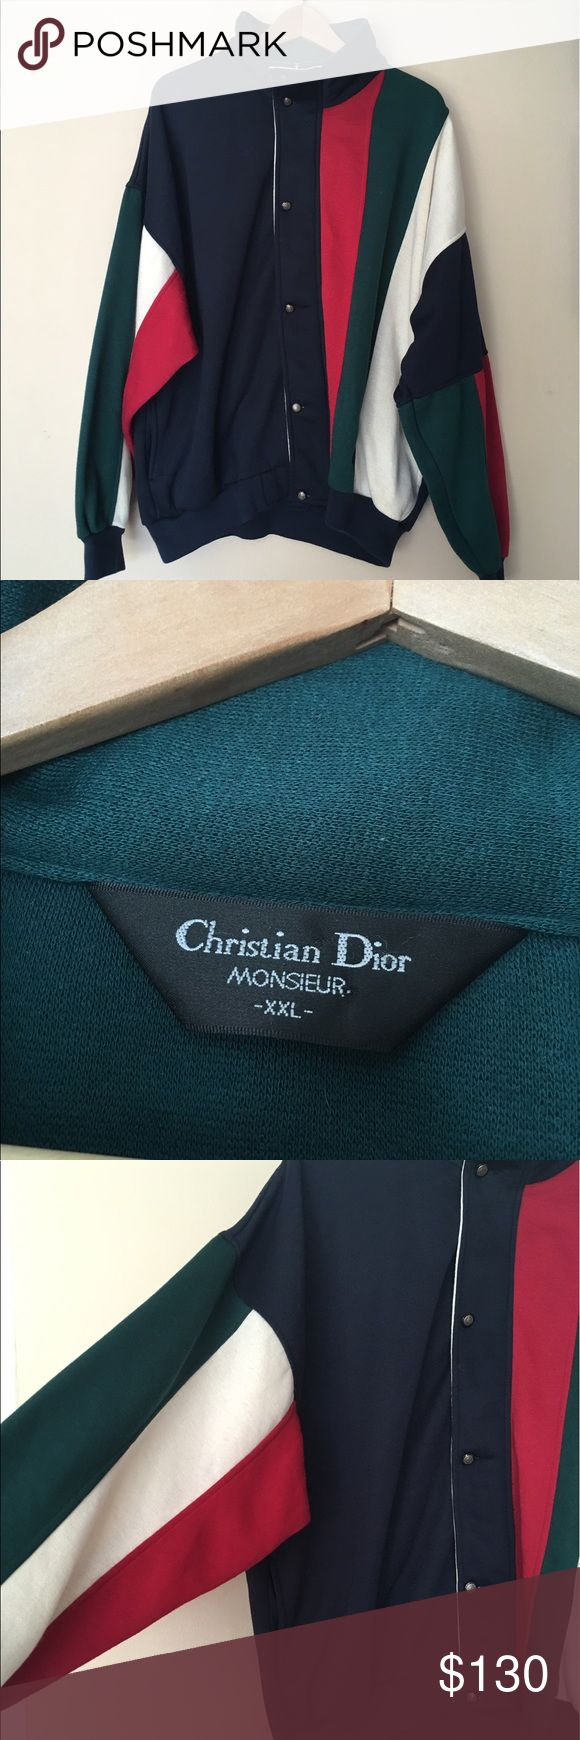 Vintage Christian Dior Zip Sweatshirt Colorblock Awesome condition vintage dior sweatshirt/jacket! Size XXL, but can fit oversized and worn open like a cardigan. Dior label on sleeve. Stunning Dior buttons and zipper pull. Navy, green, white and red colorblock pattern. Has a zipper and a button closure. Mock neck, no hood. Authentic! Christian Dior Jackets & Coats Bomber & Varsity